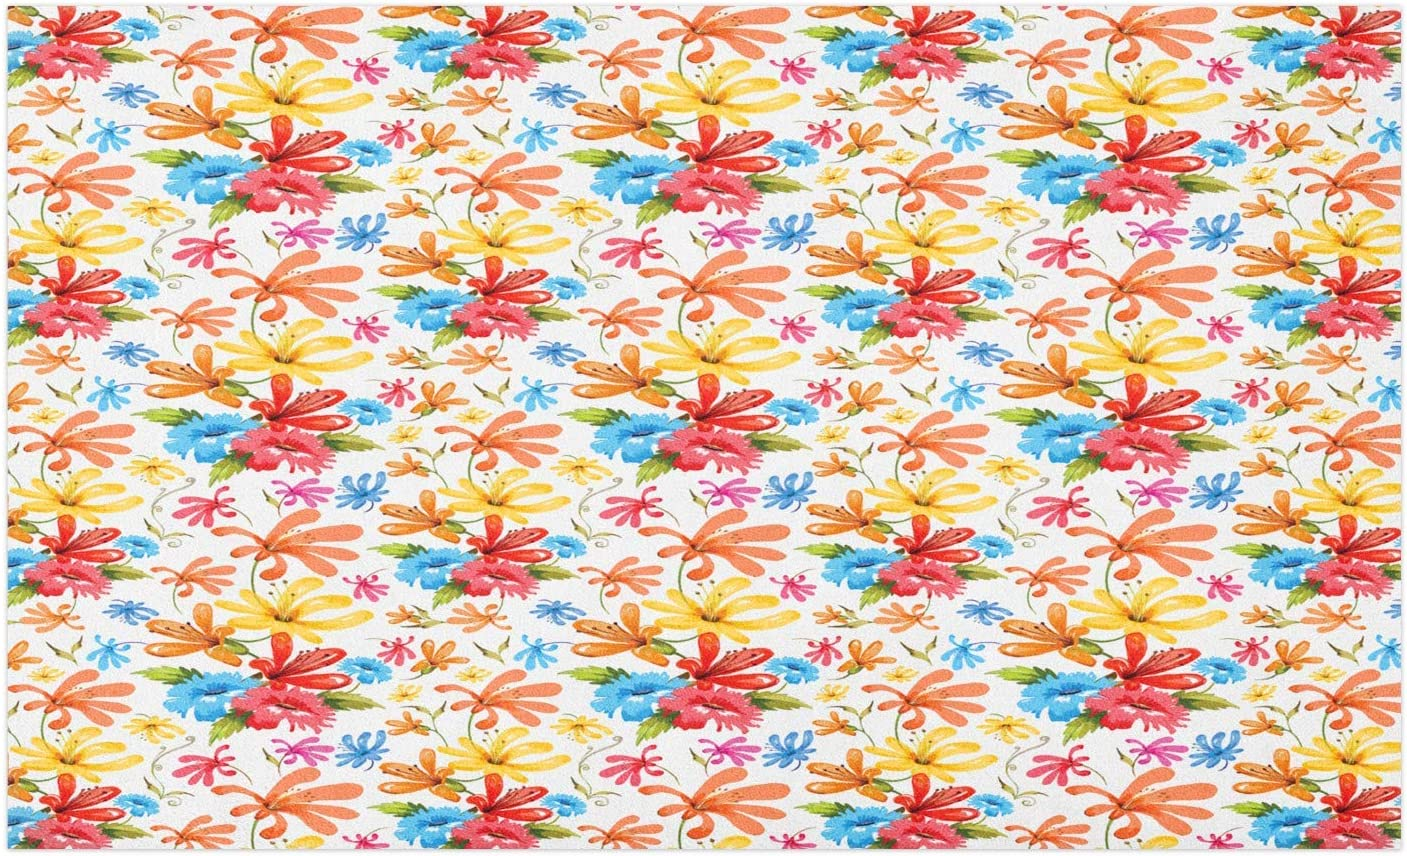 """GugeABCmat Kids Floor Mats,Nursery Cartoon Abstract Coral Reef with Silhouette Animals Seashell and Starfish,Modern Kitchen Rug 42"""" W X 36"""" L,Multicolor"""